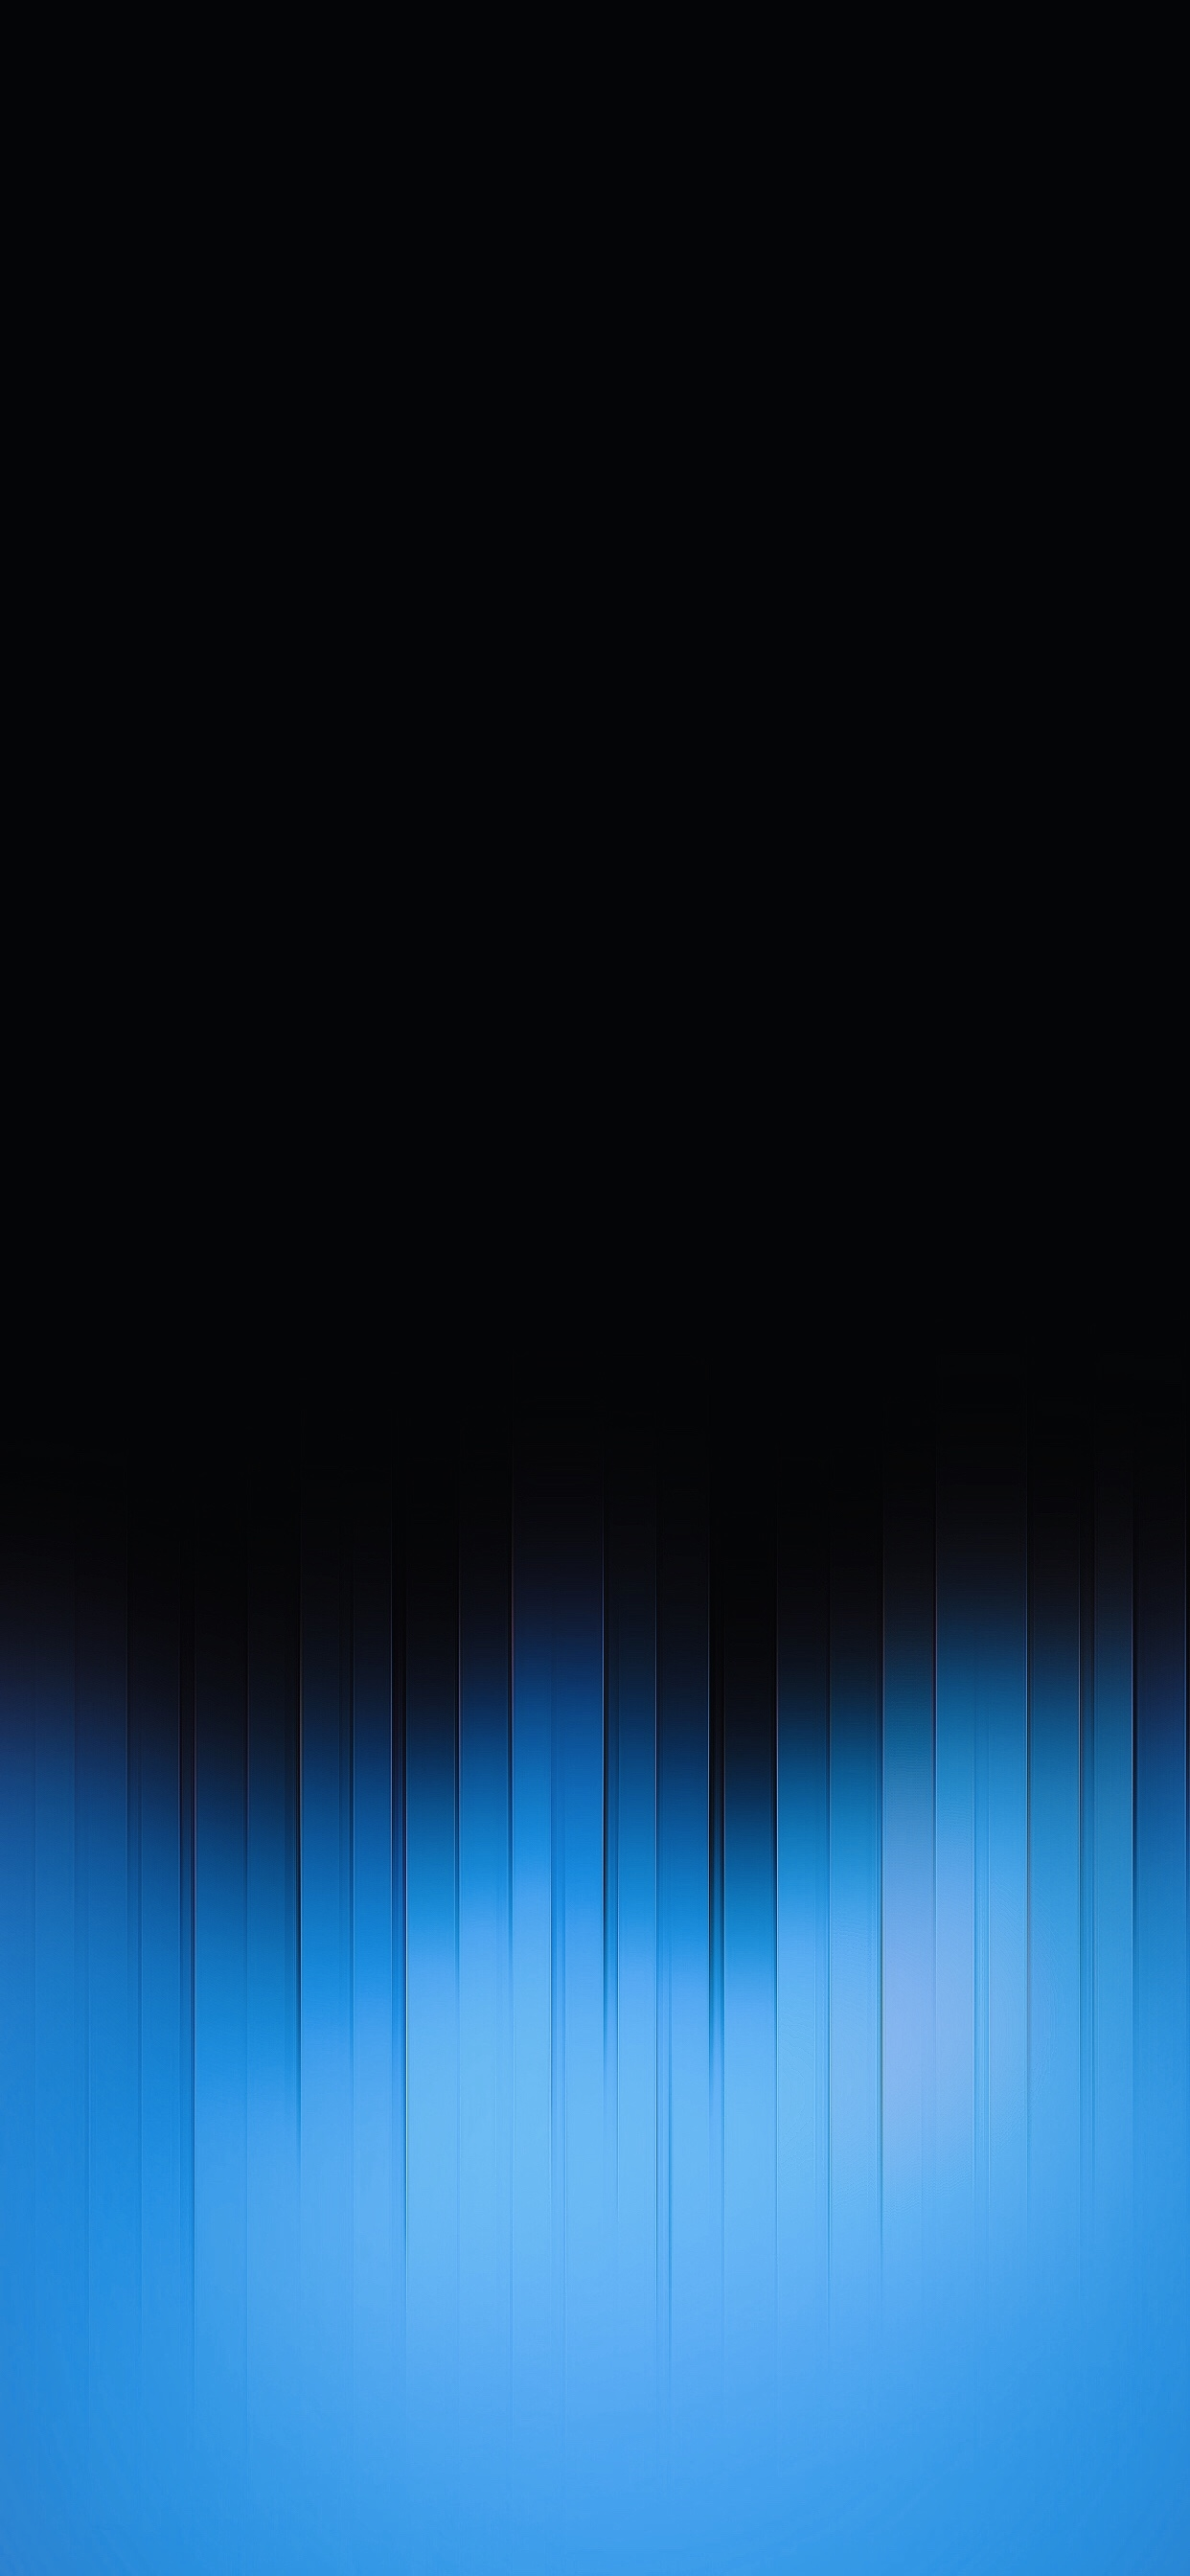 notch-less wallpaper | Zollotech